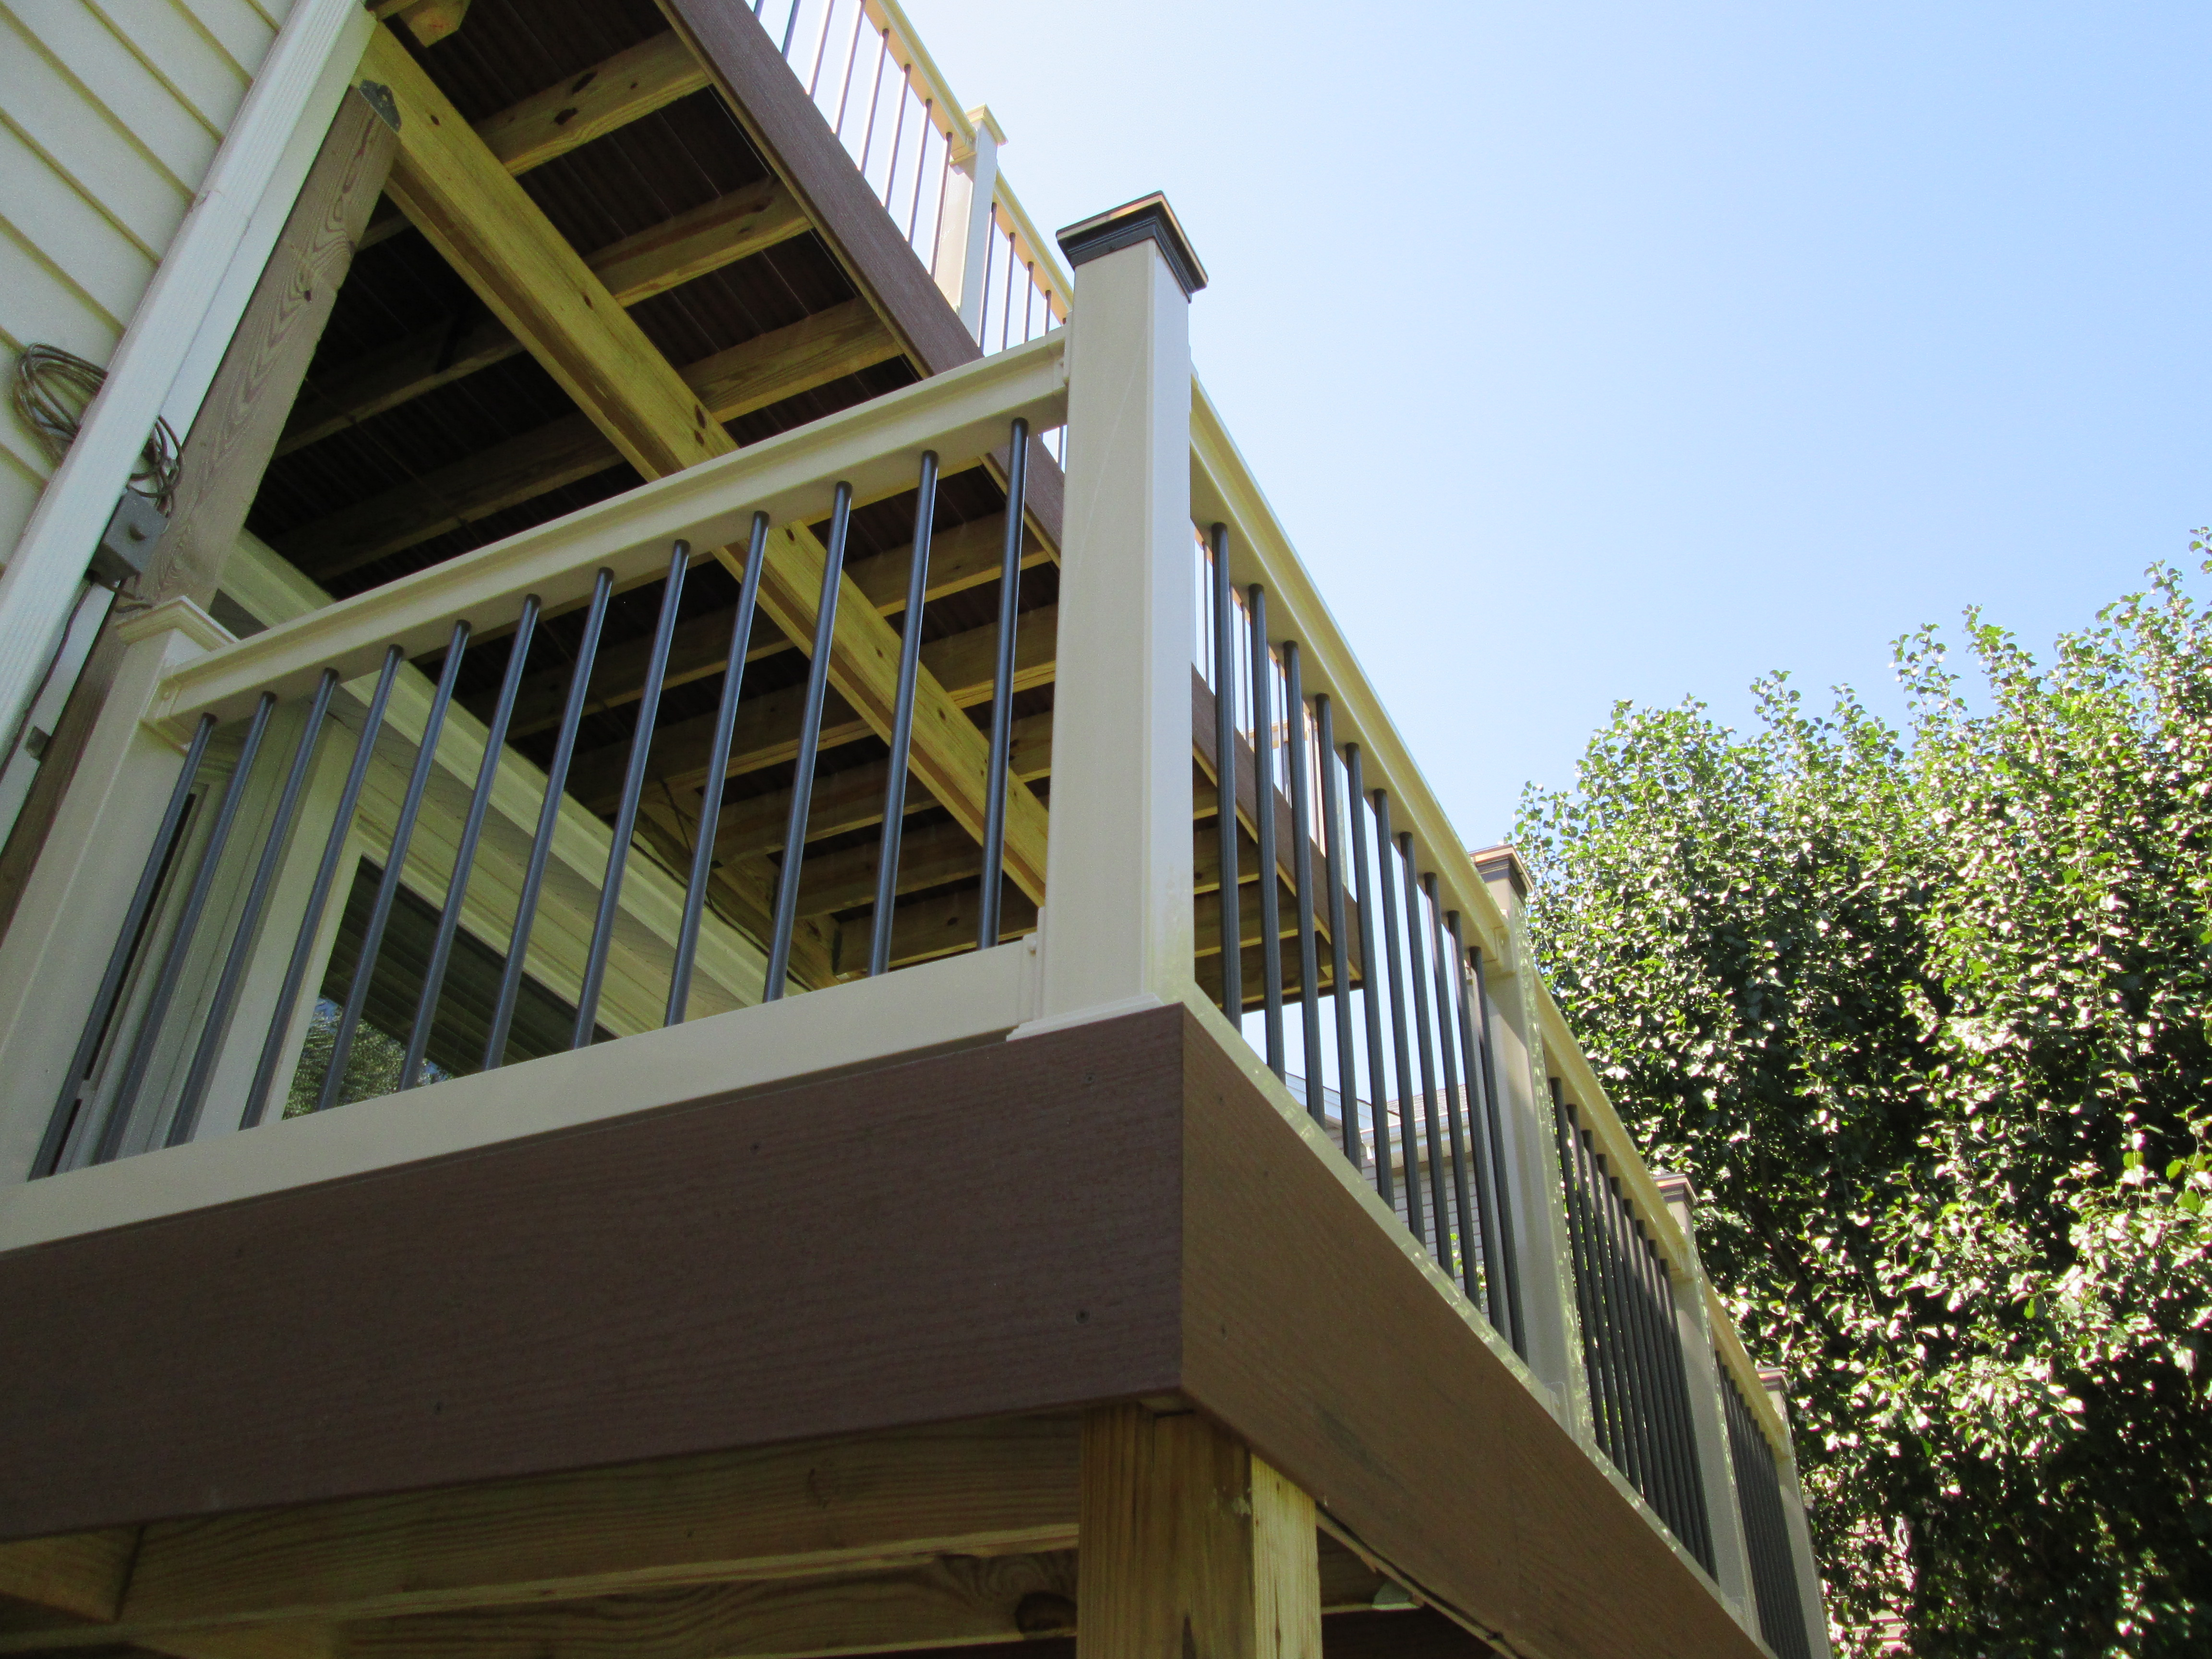 St louis decks screened porches pergolas by archadeck for Two story deck